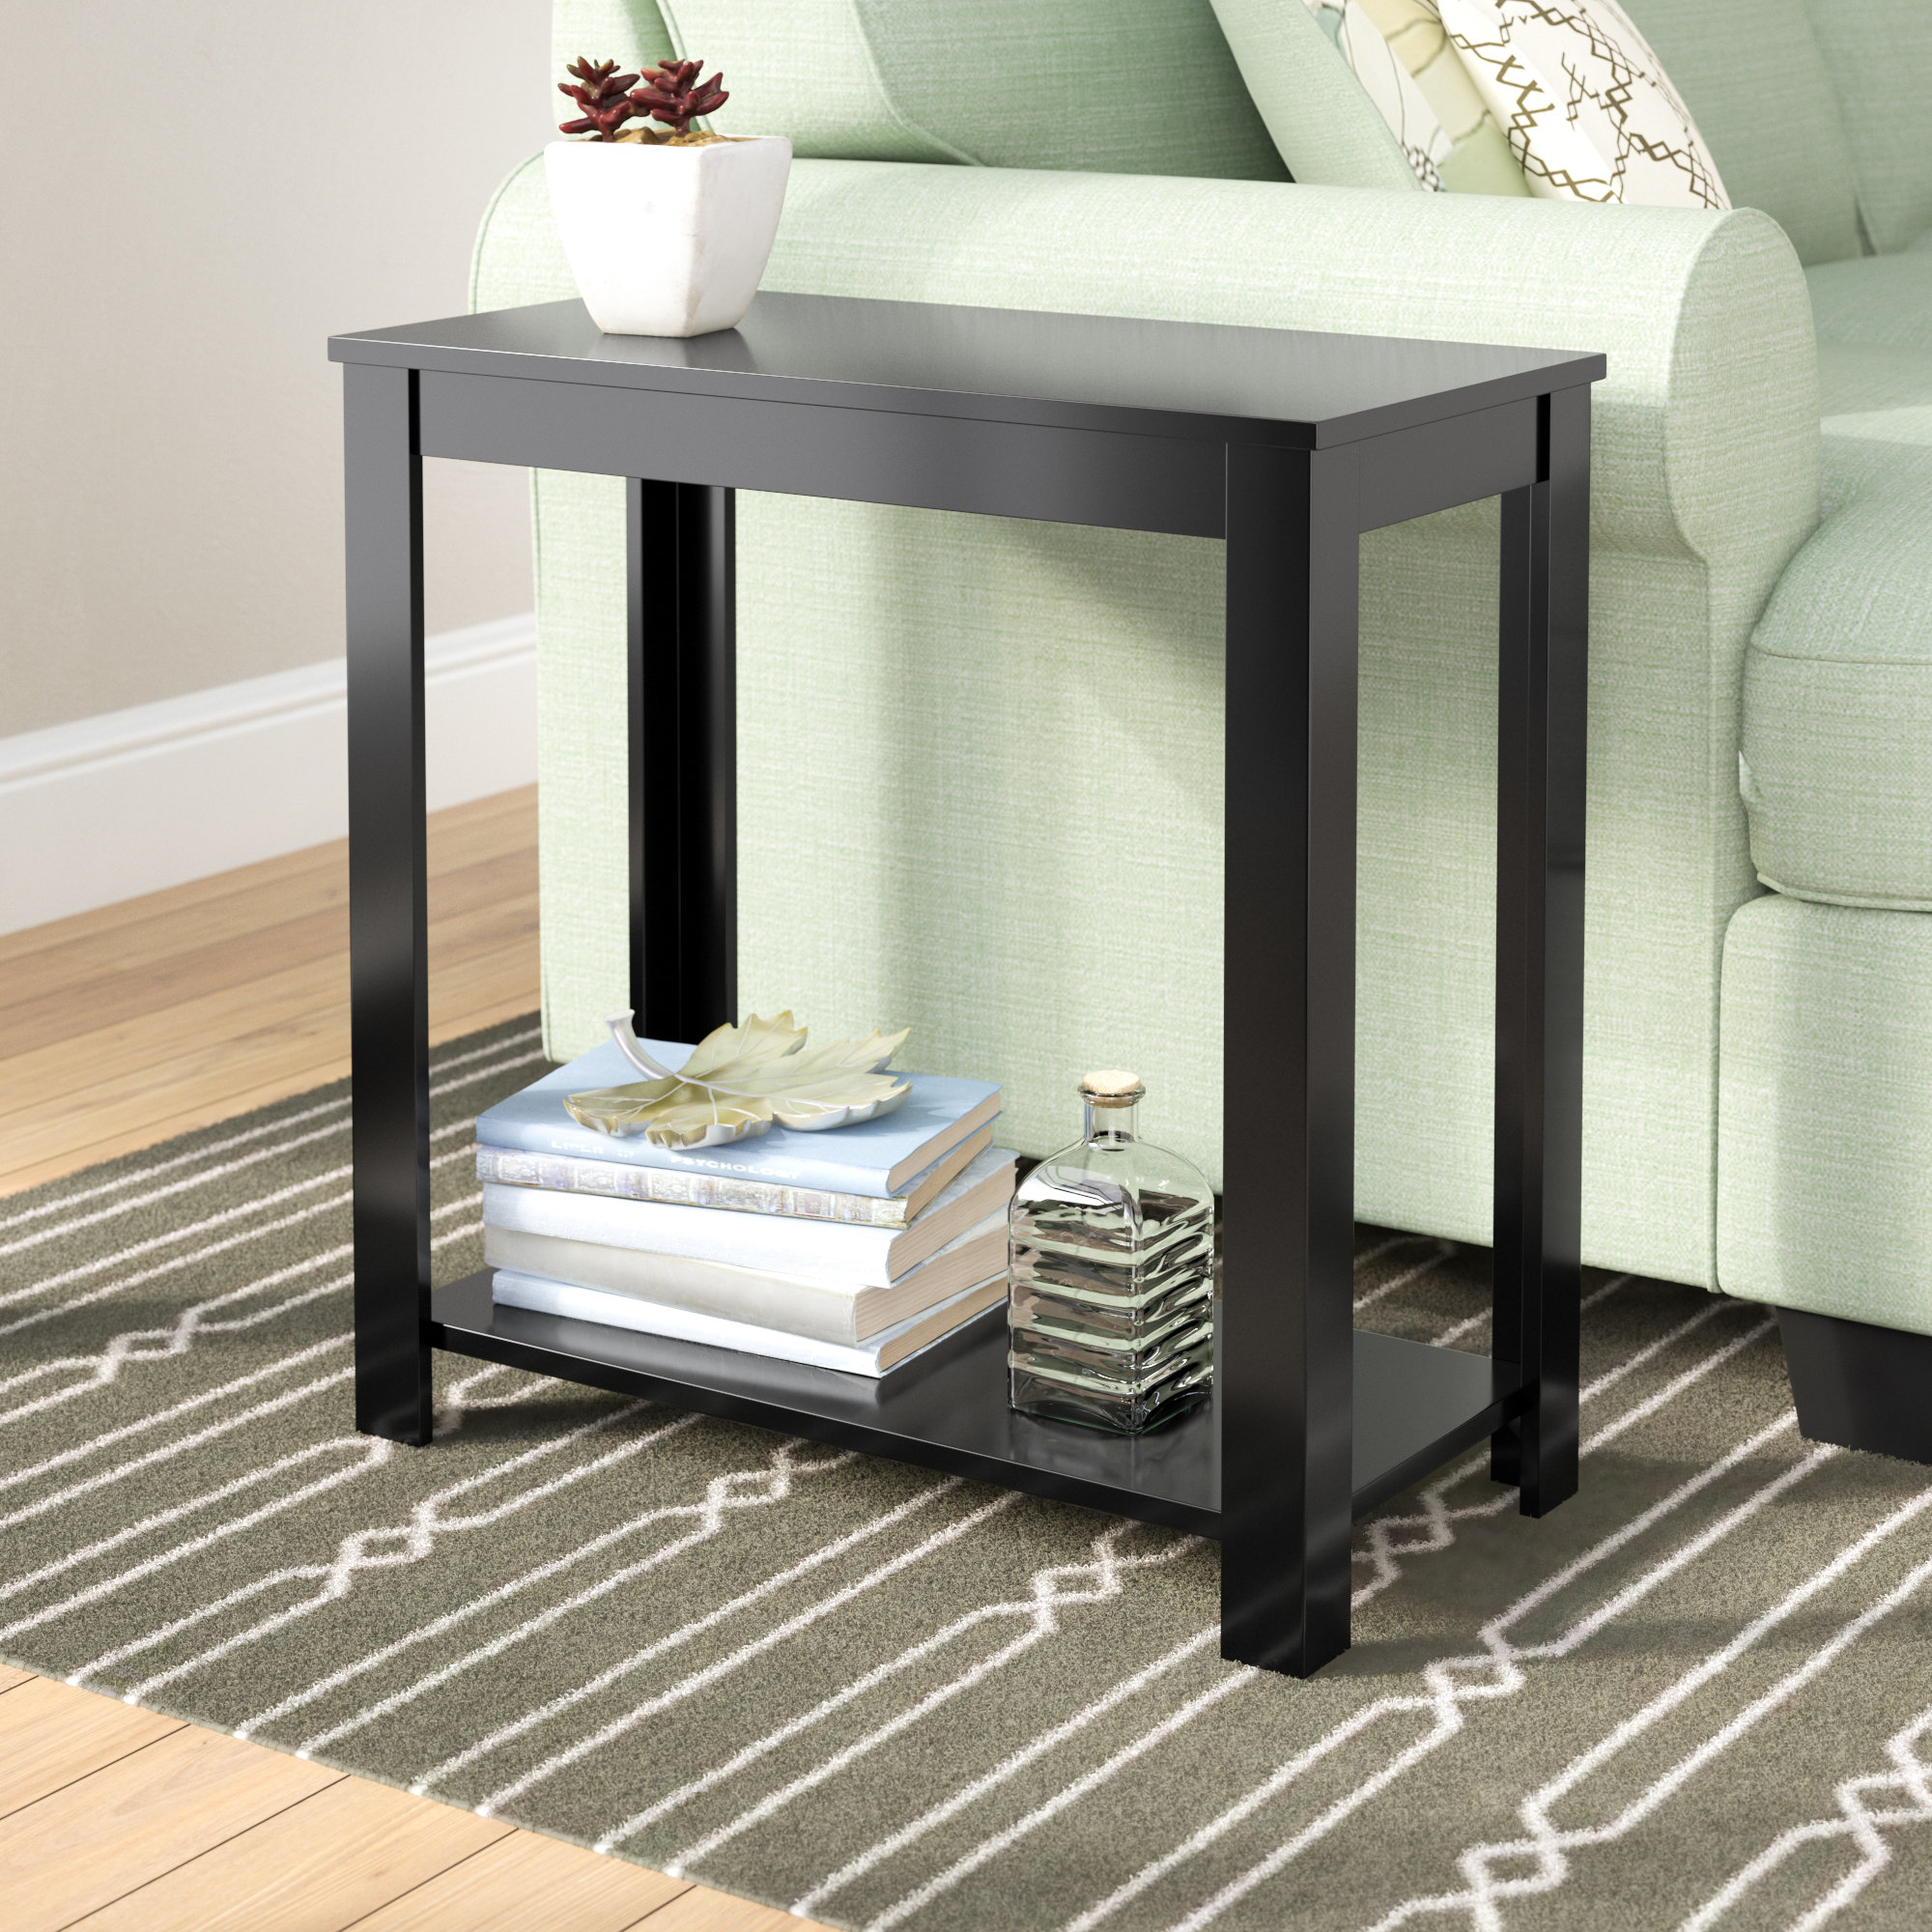 rectangle small under end side tables you love kier table rectangular accent quickview wooden cabinet dining room height runner patterns for beginners nic umbrella storage with